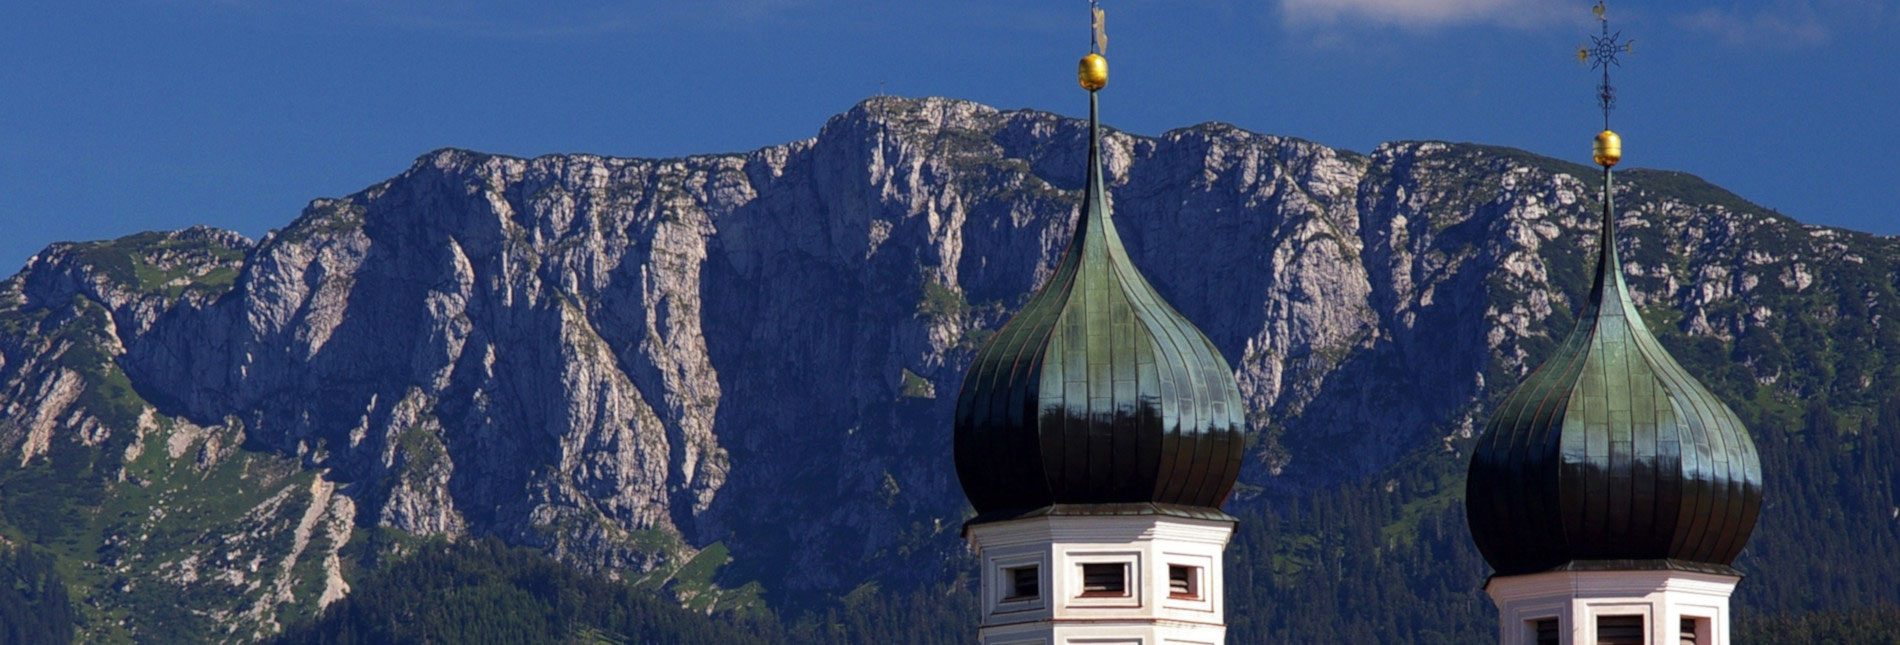 Mountain-day-trips-from-Munich